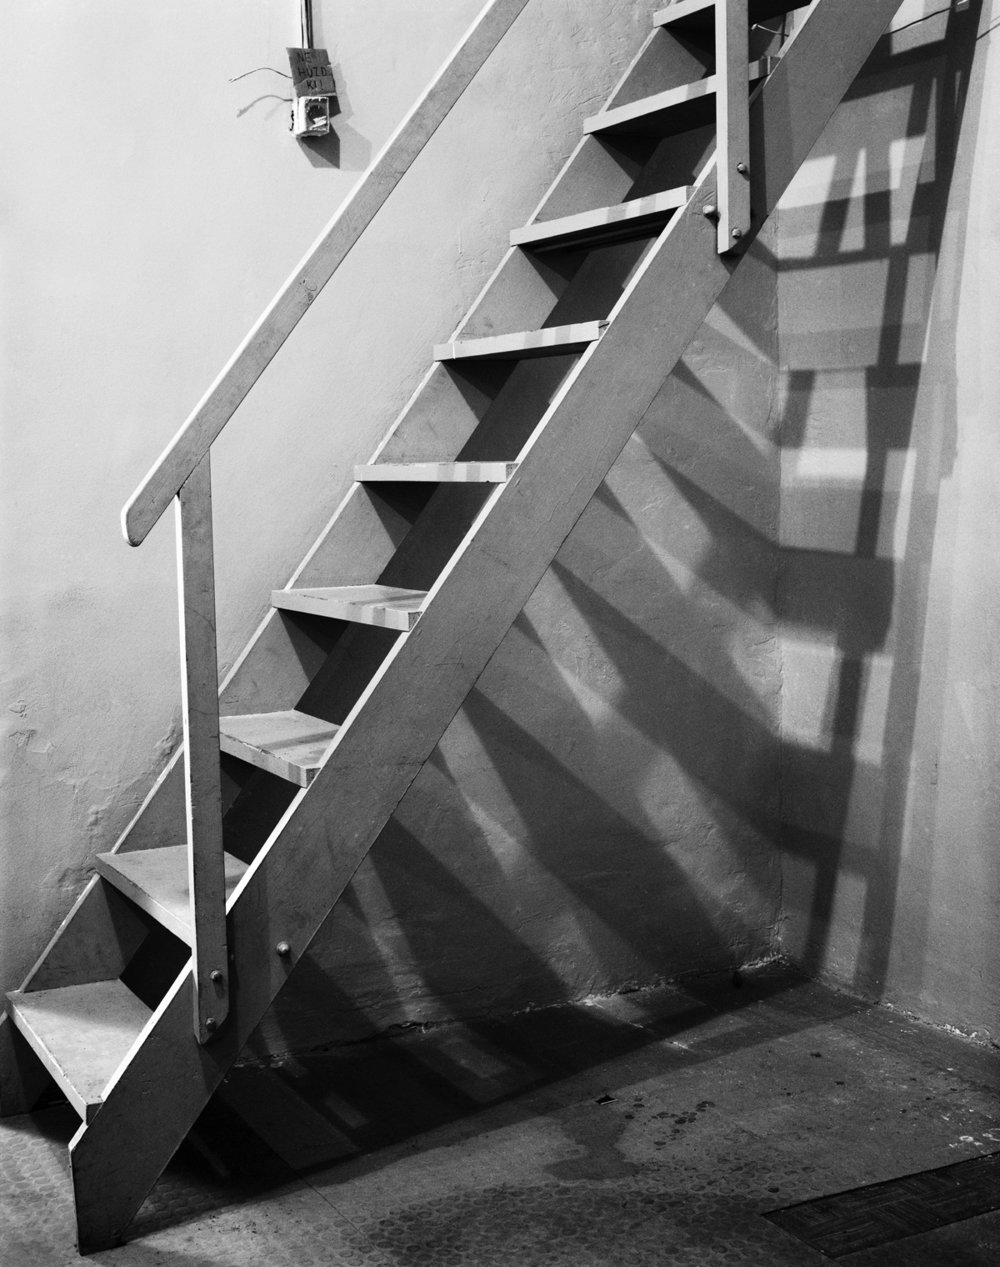 Stairs 2011, Epson fine art print, 50 x 40 cm Ed. of 5